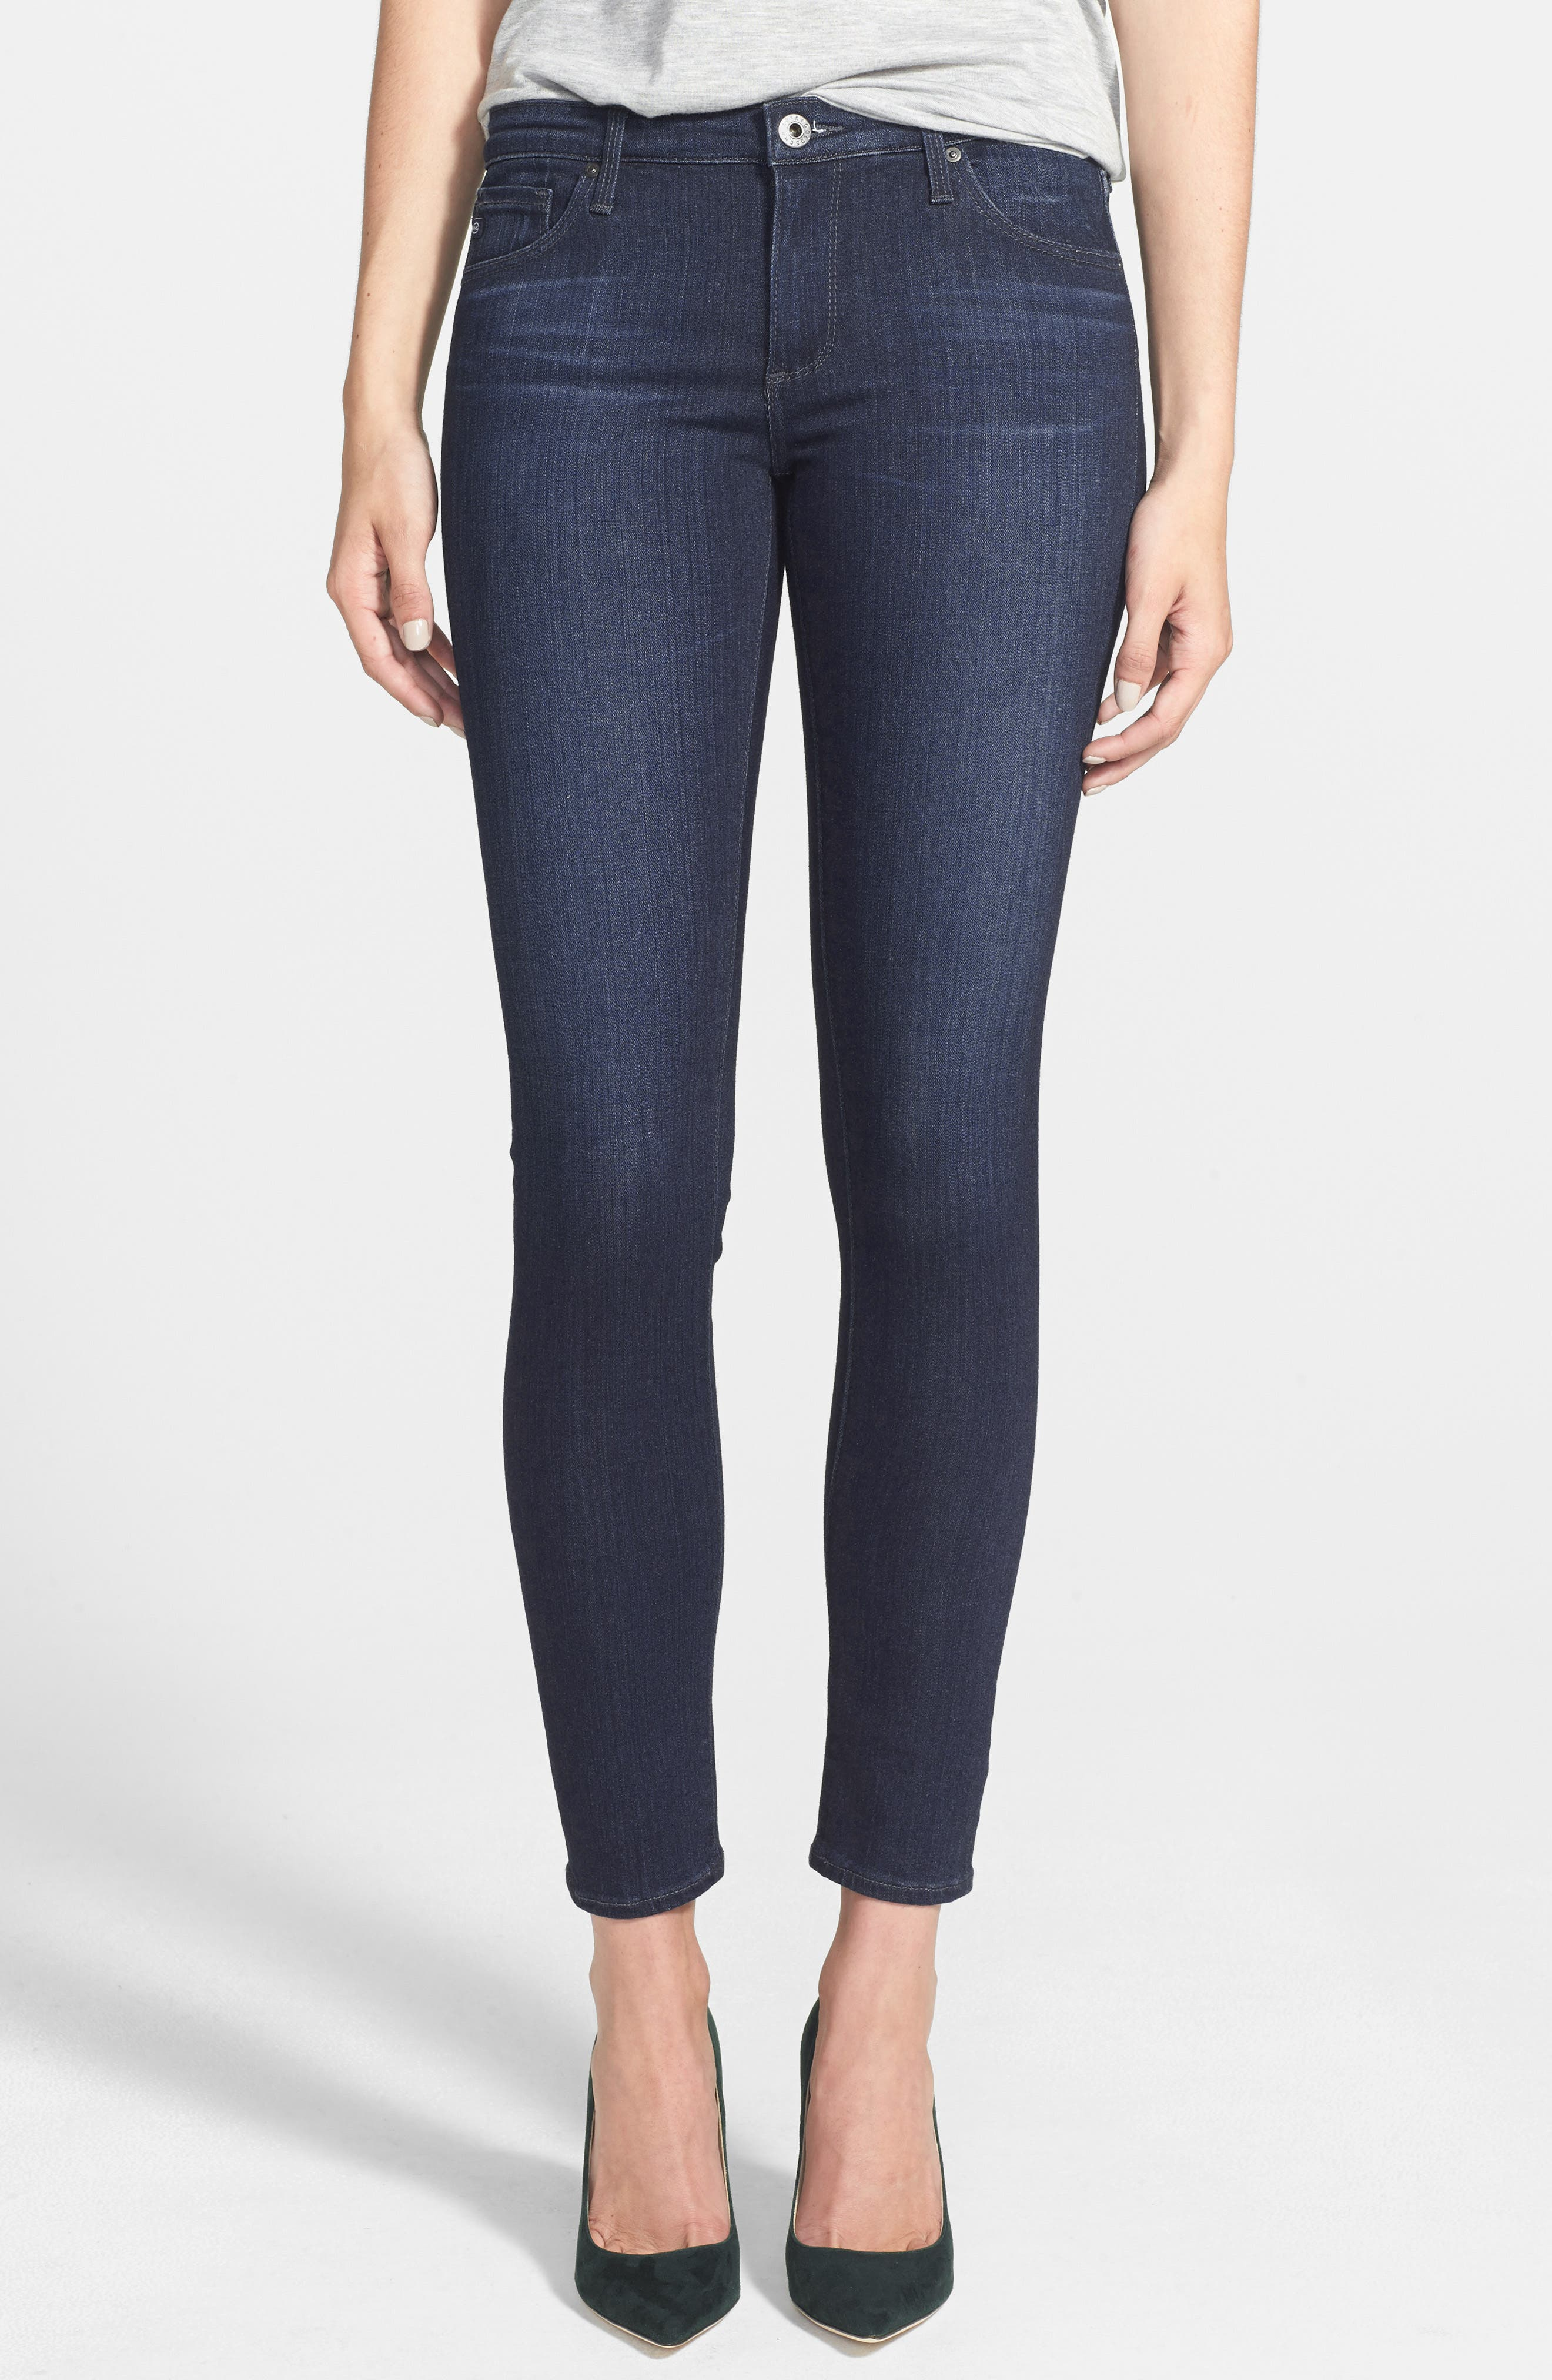 Alternate Image 1 Selected - AG The Legging Ankle Super Skinny Jeans (Coal Grey)